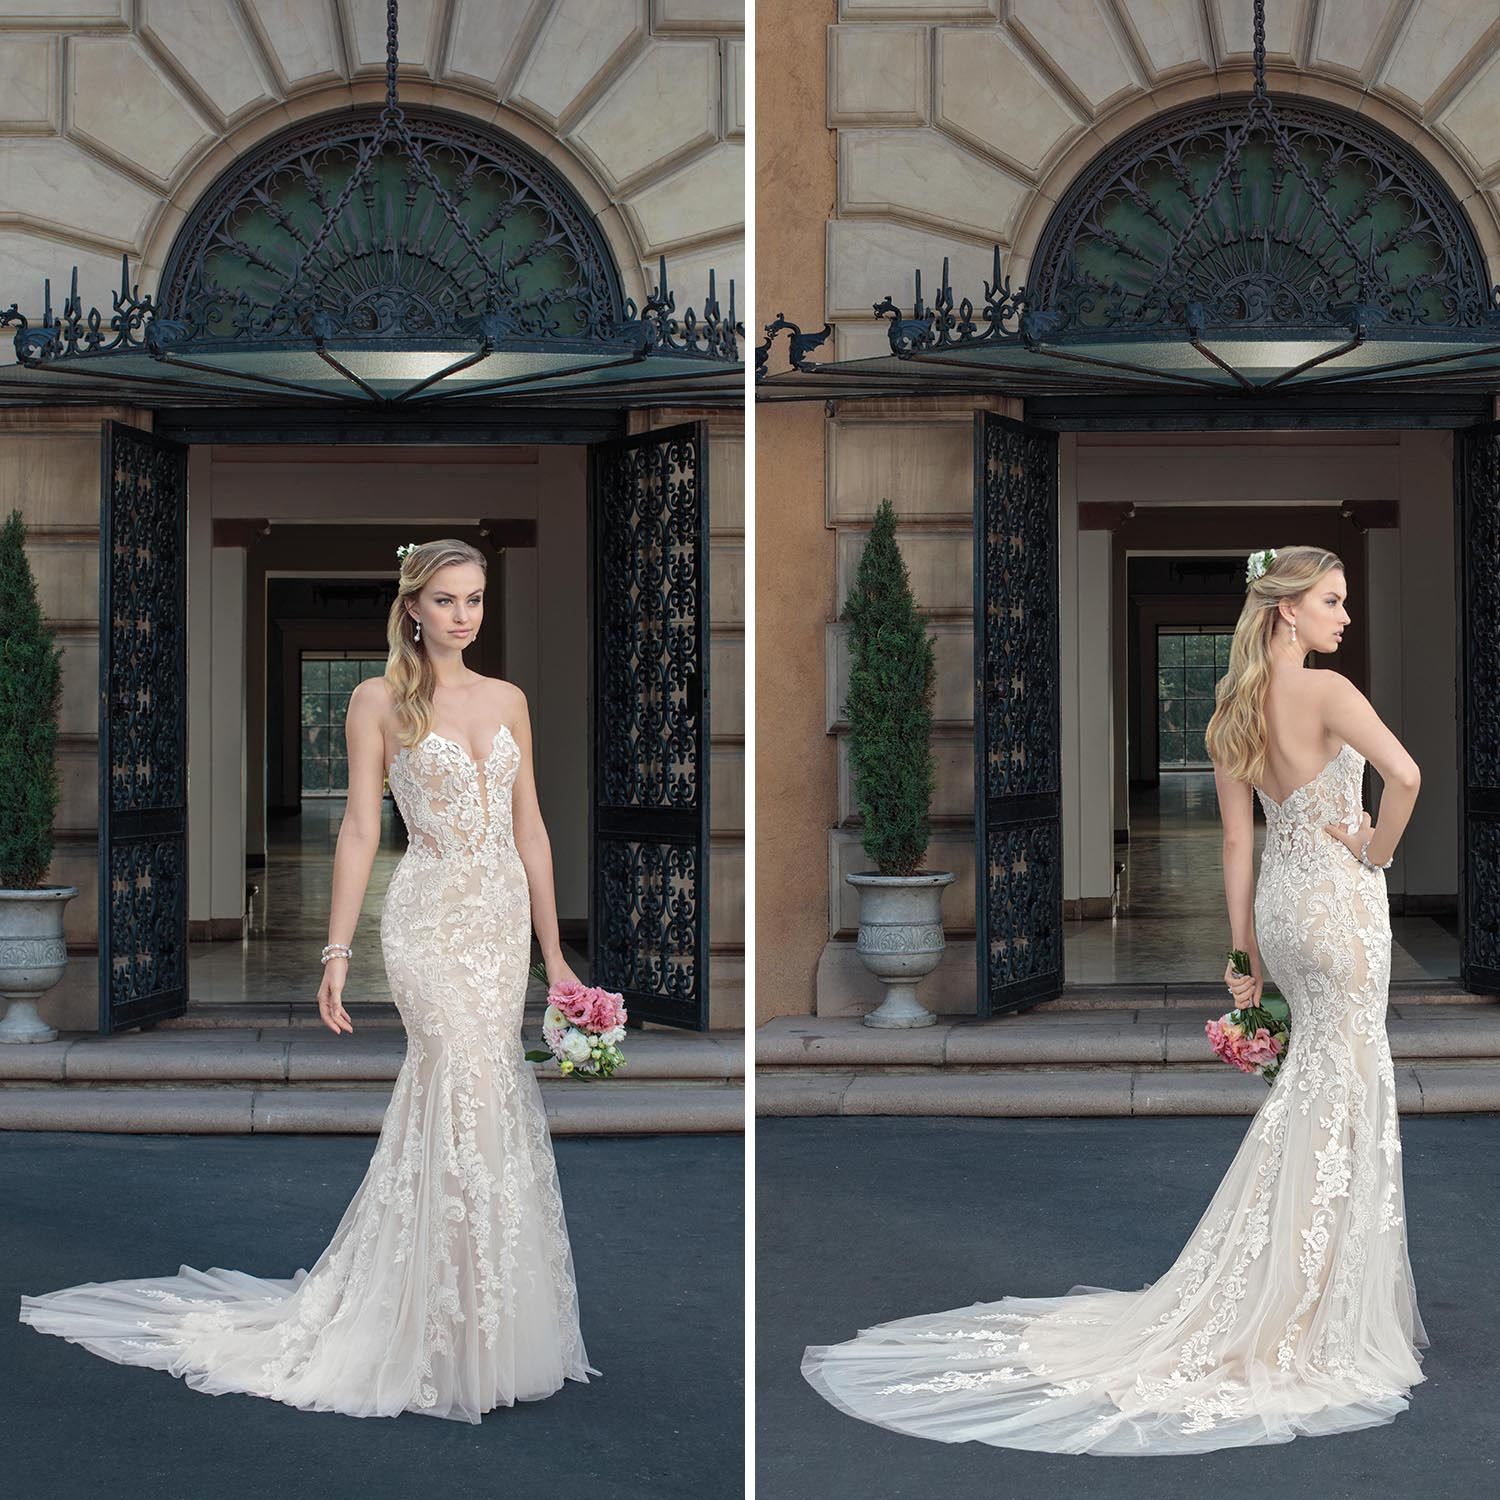 Casa Blanca Wedding Gowns: Lavish Lace Meets Sassy Sweetheart